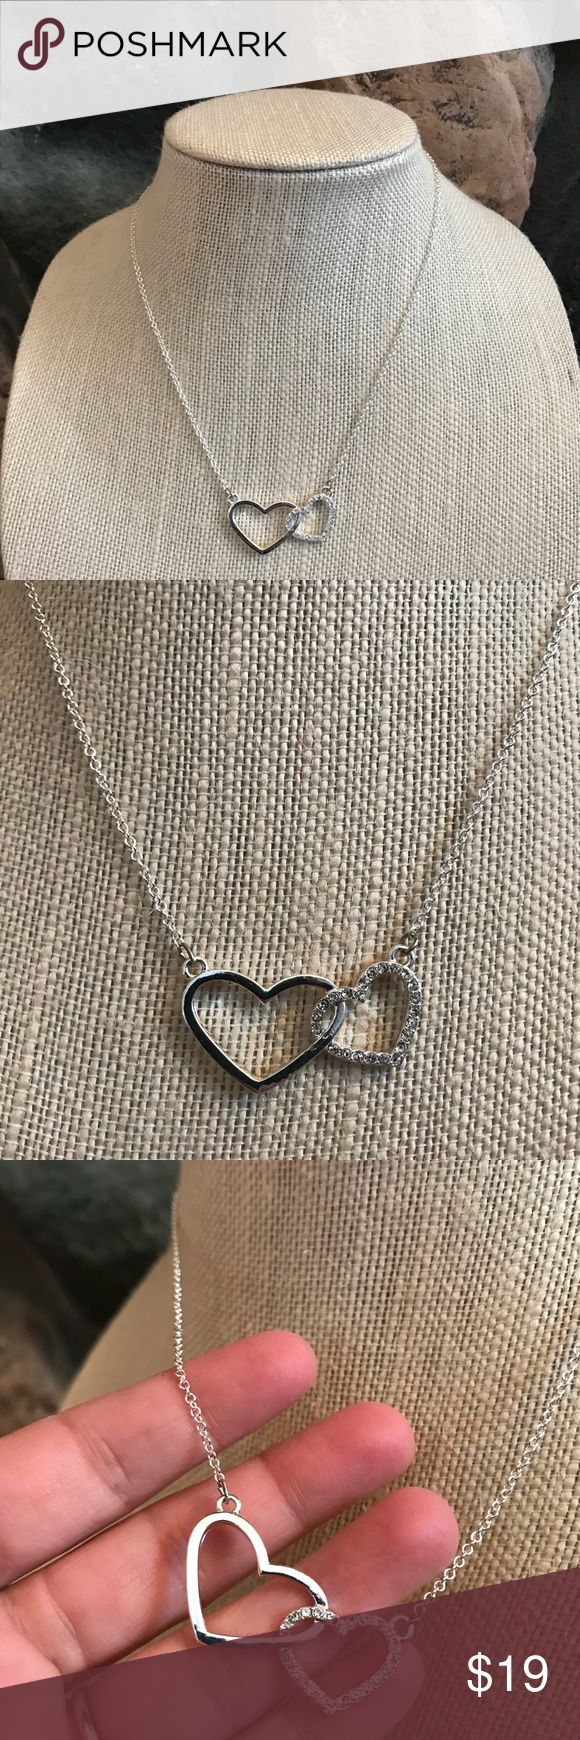 """Double Heart Necklace NWOT Silver metal tone. Fashion jewelry. Two hearts entwined. 18"""" Necklace. Great Valentines Day gift! Jewelry Necklaces"""